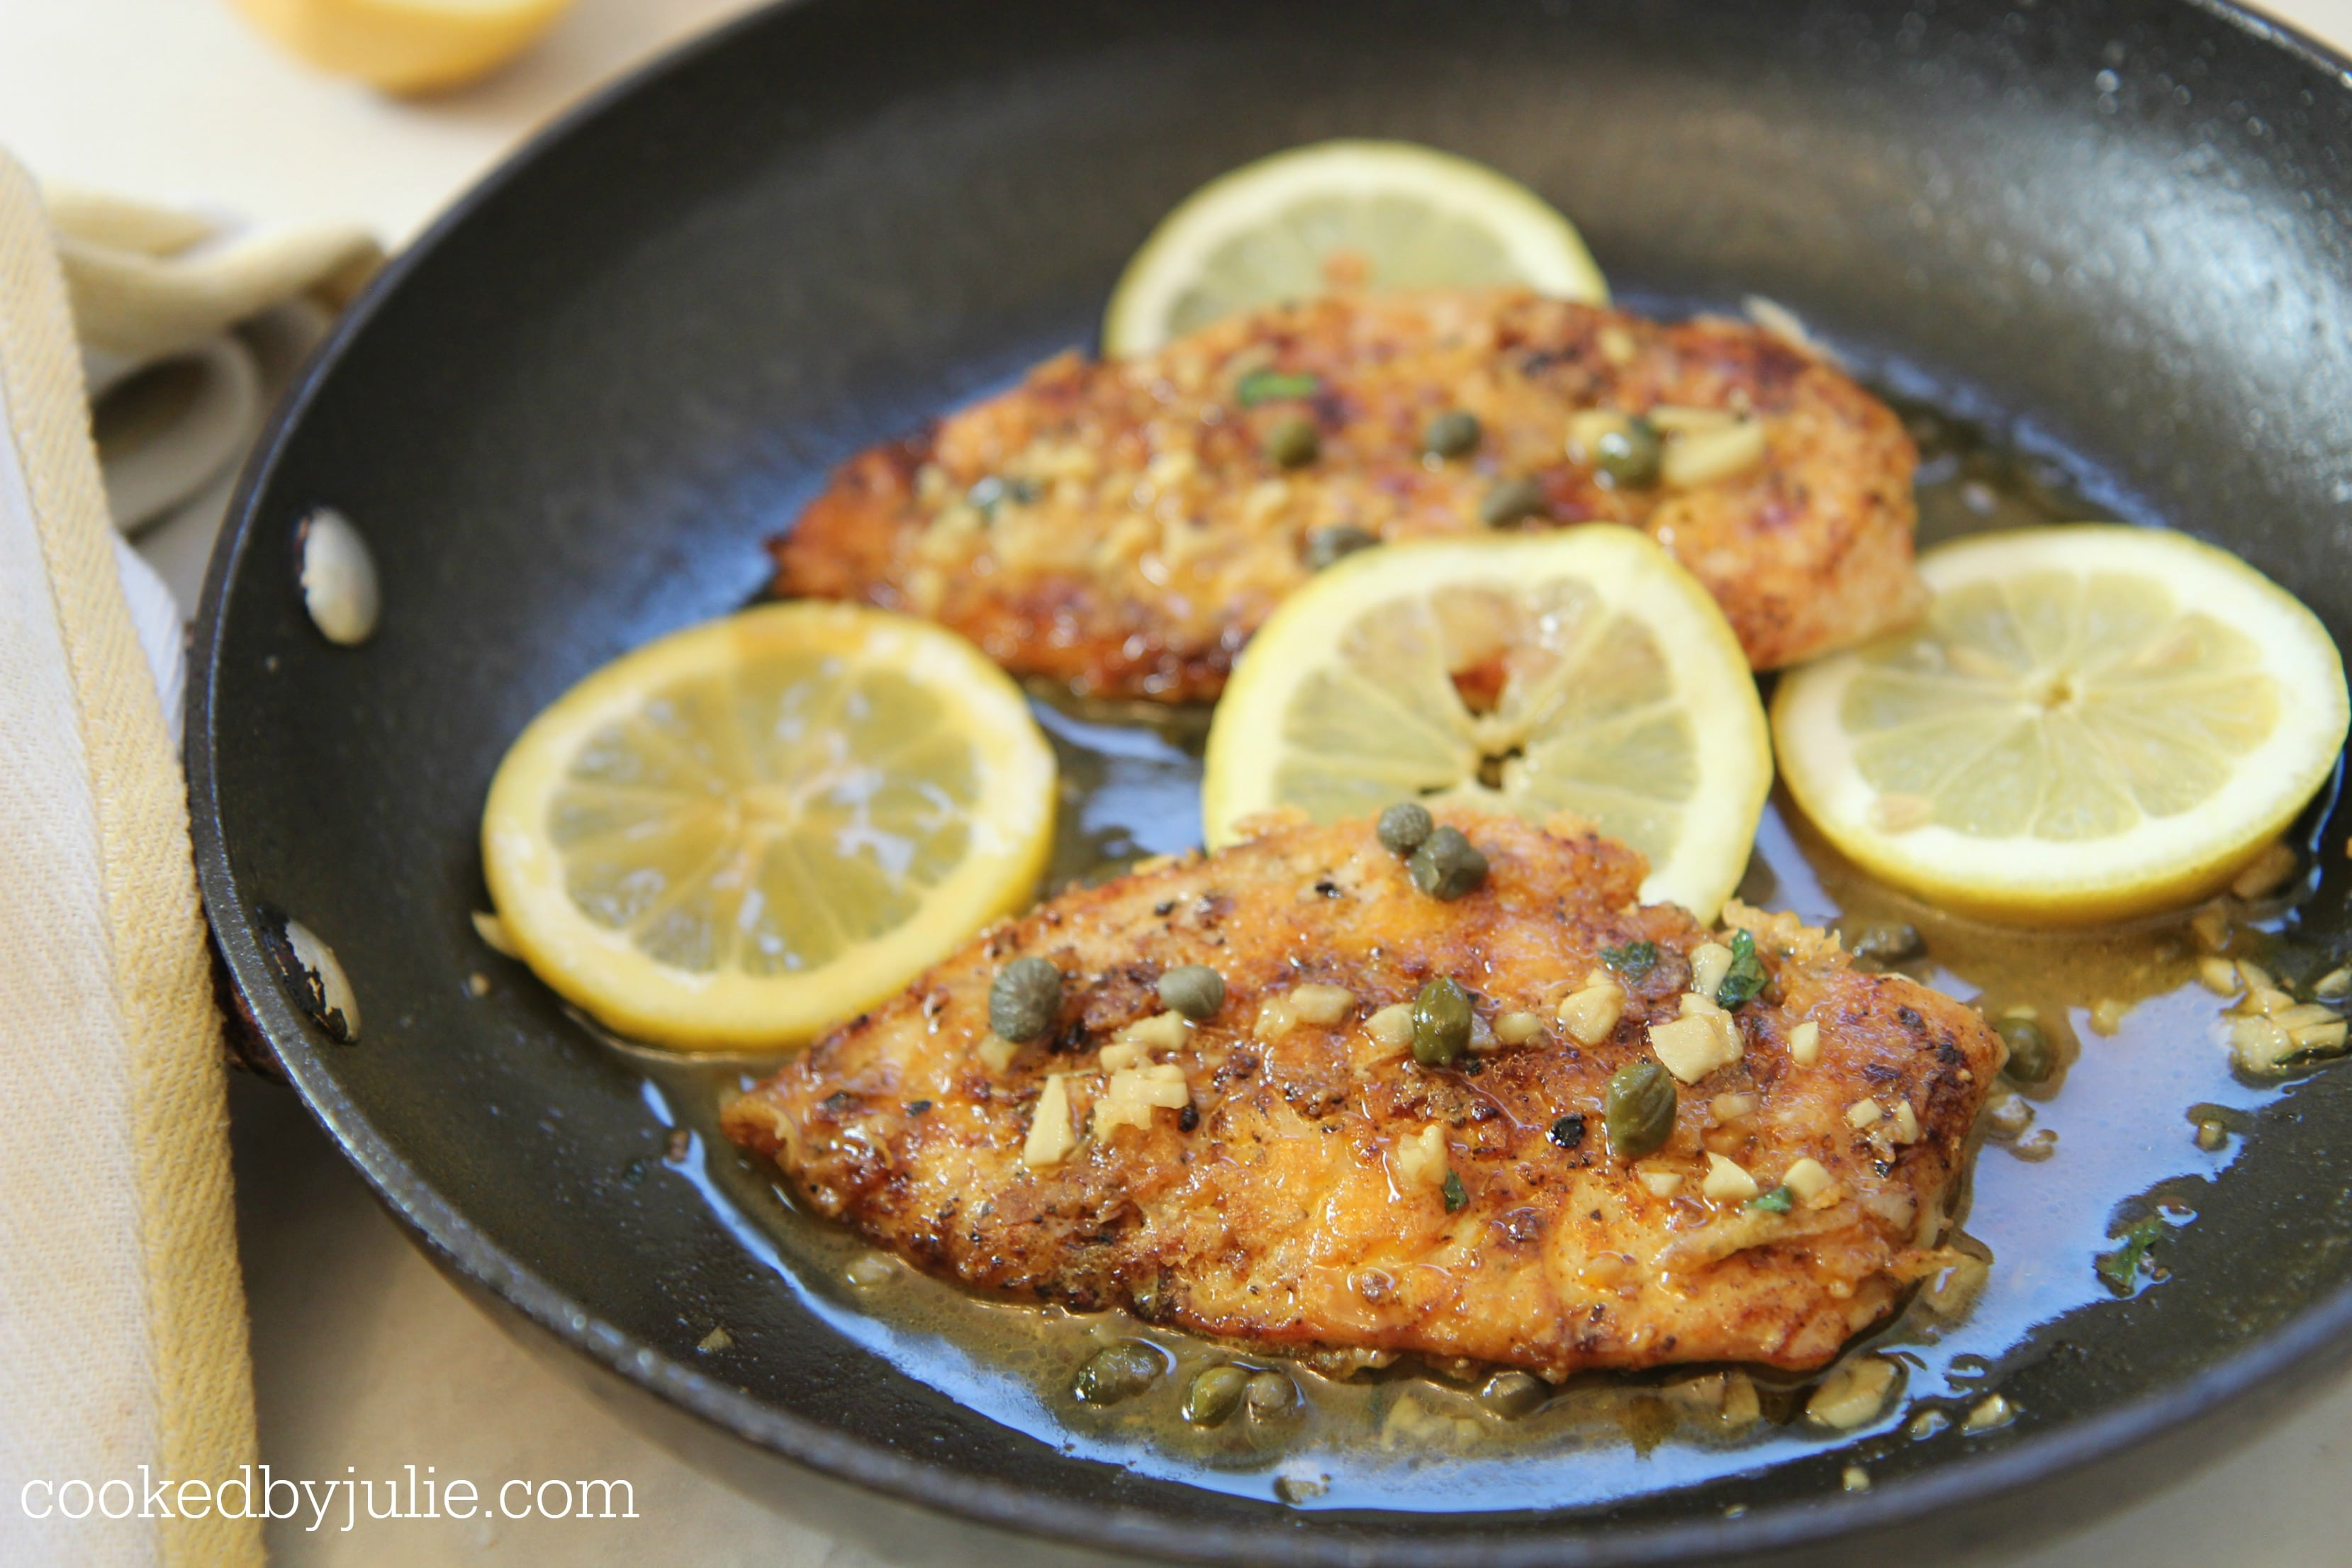 The sauce is simple and low carb getting the flavors from the lemon and capers.